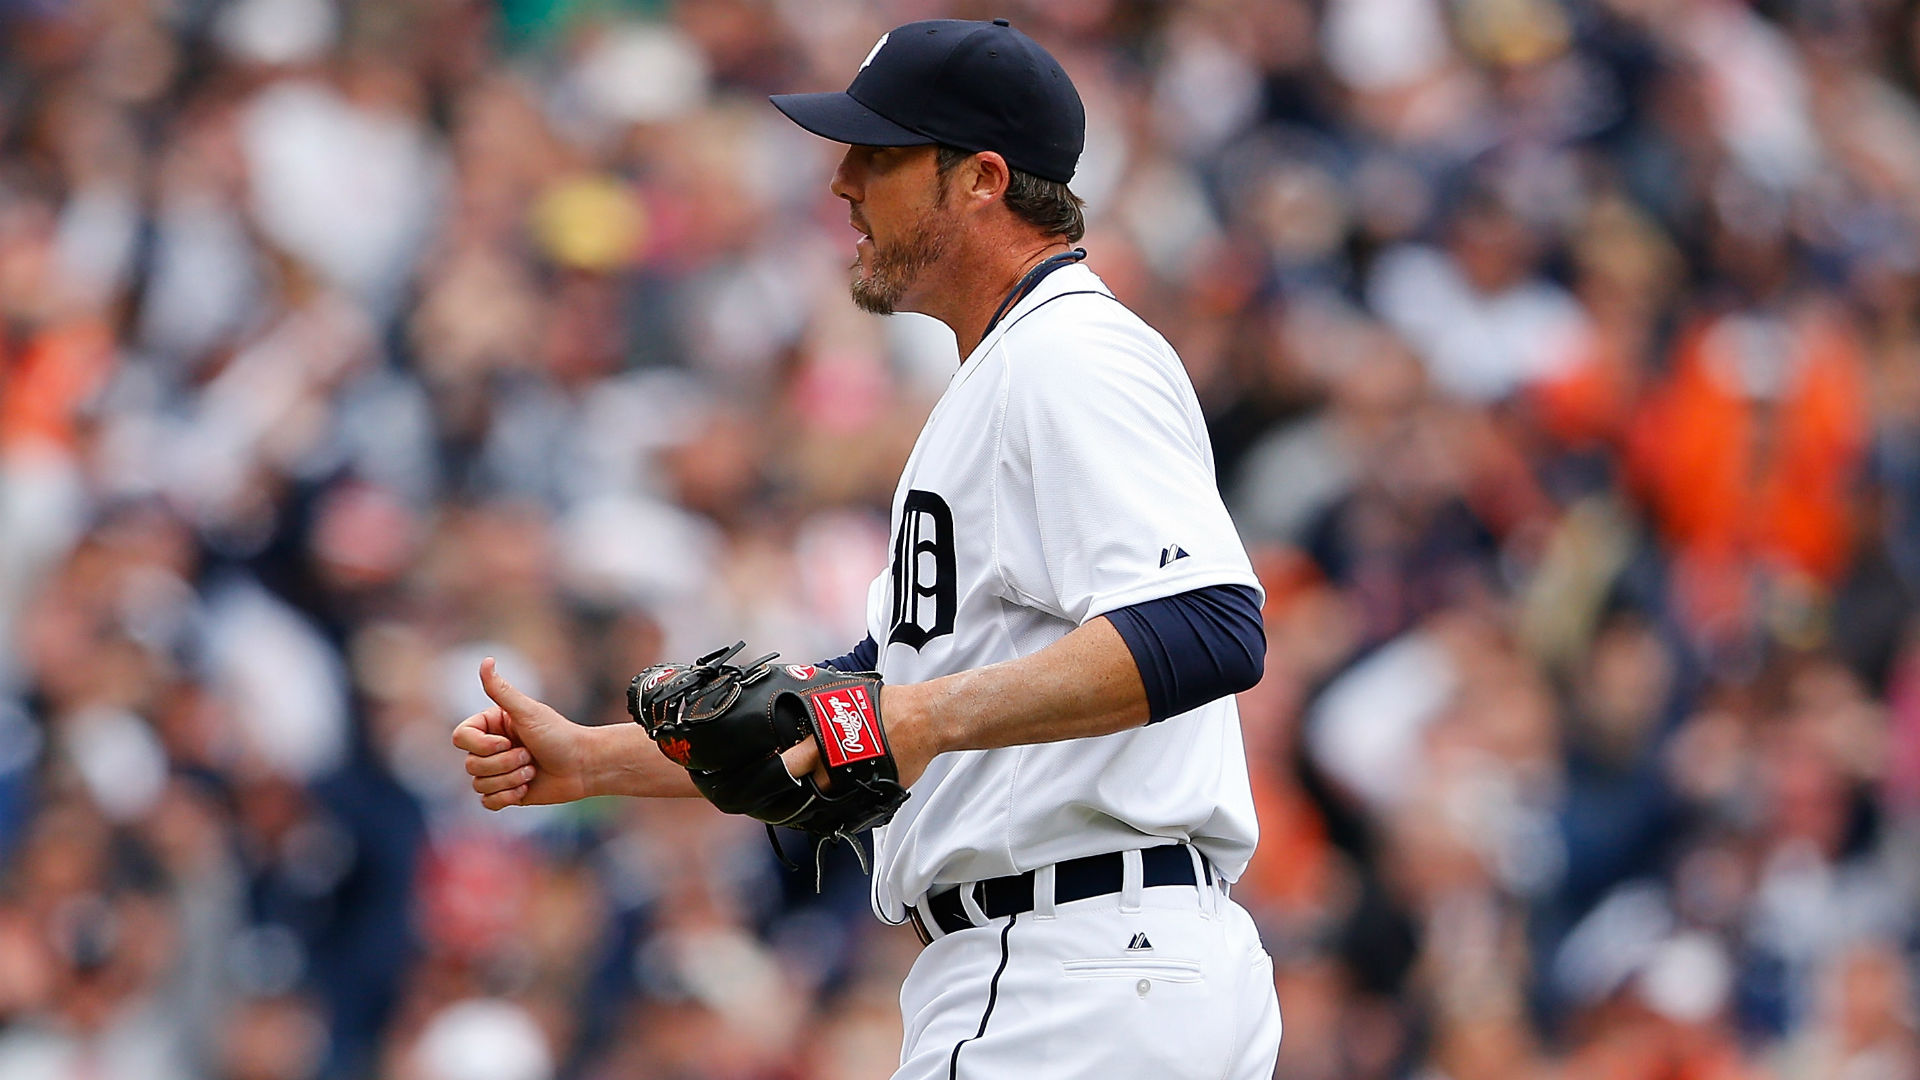 Tigers reliever Joe Nathan